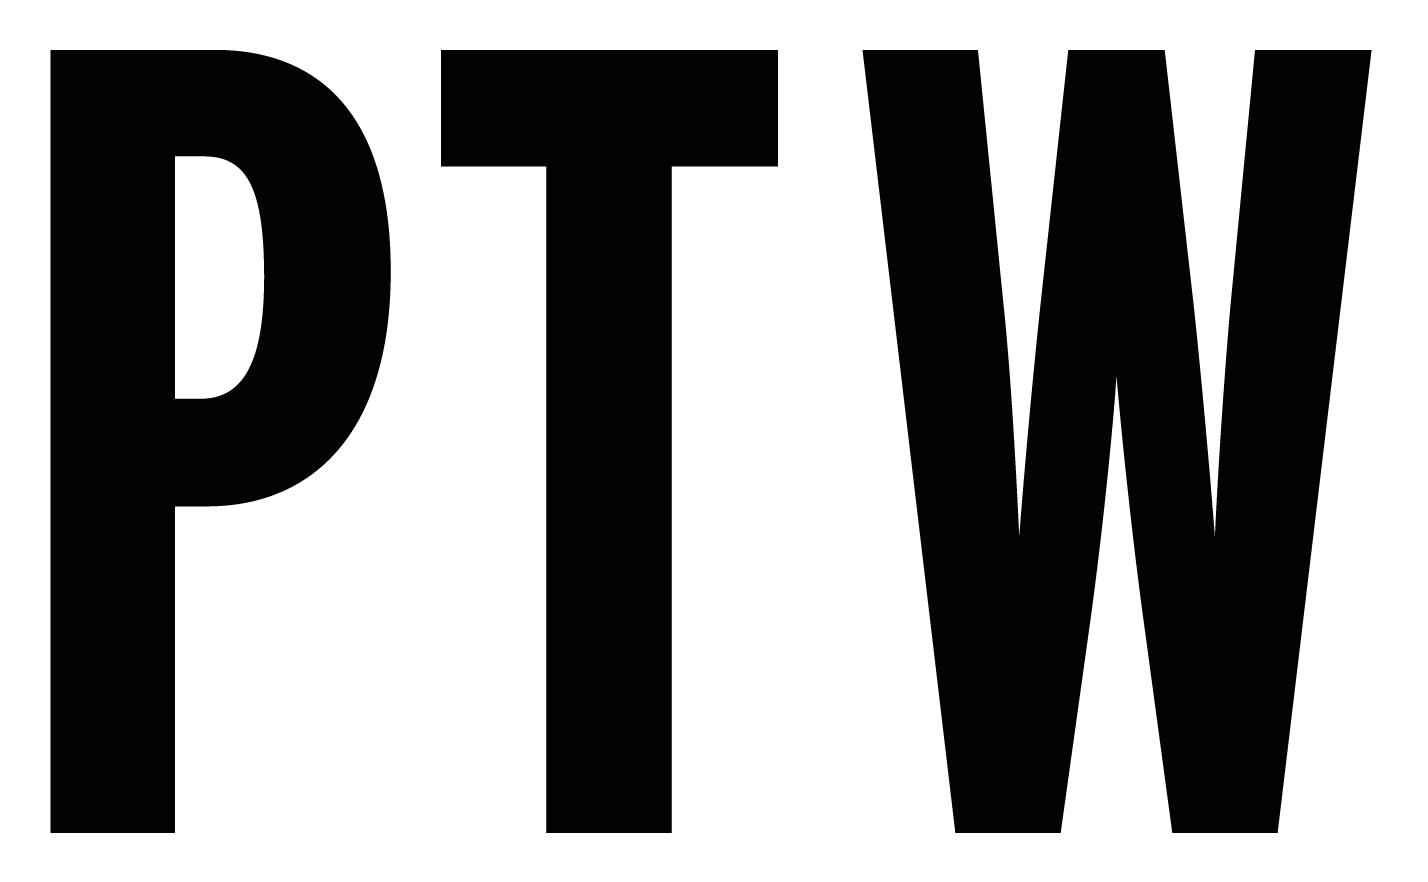 PTW (Singapore) Pte., Ltd. Taiwan Branch